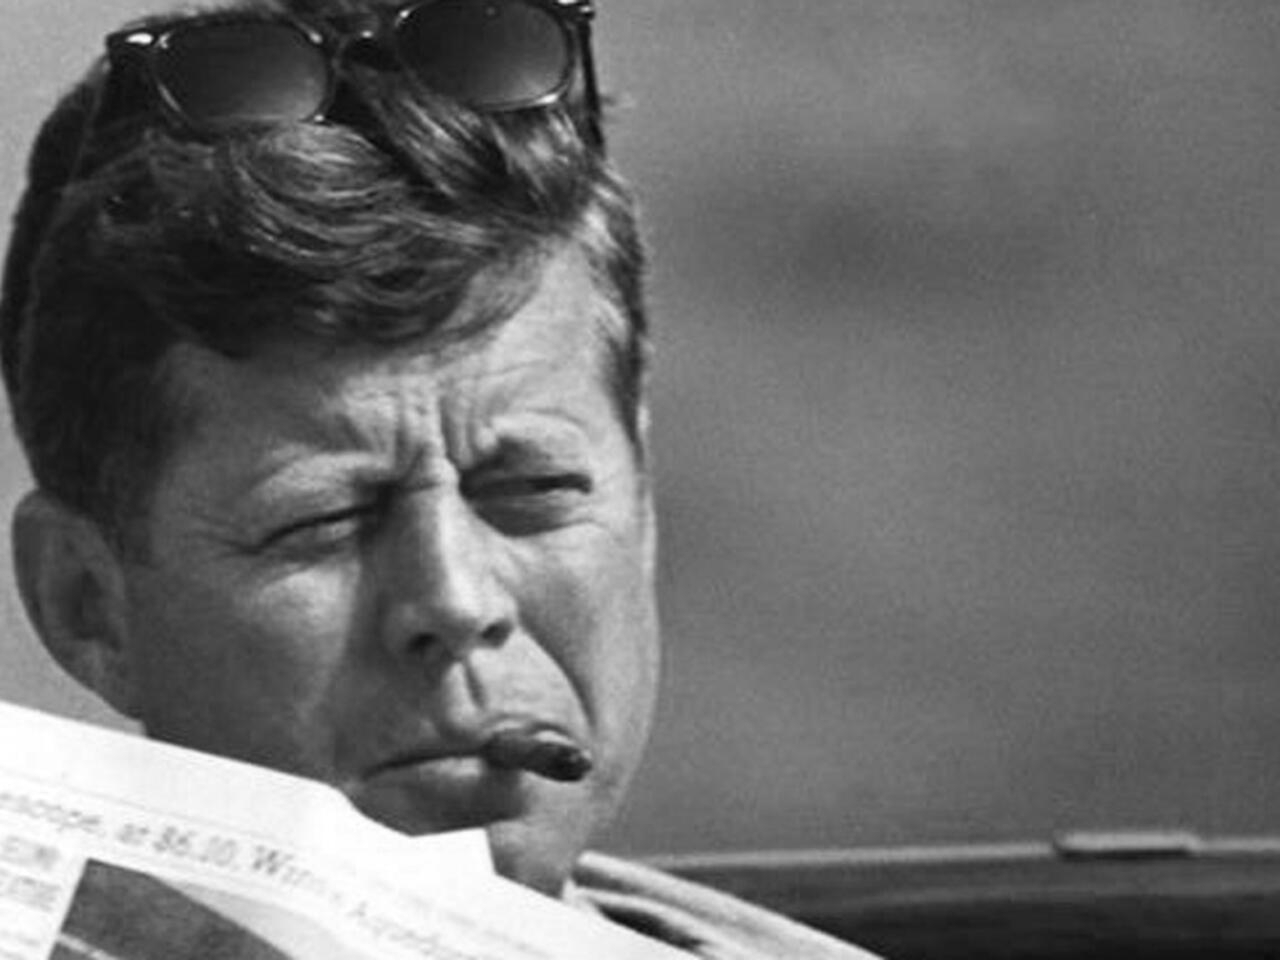 Documentos Secretos Sobre Kennedy Gran Expectativa Pocas Revelaciones